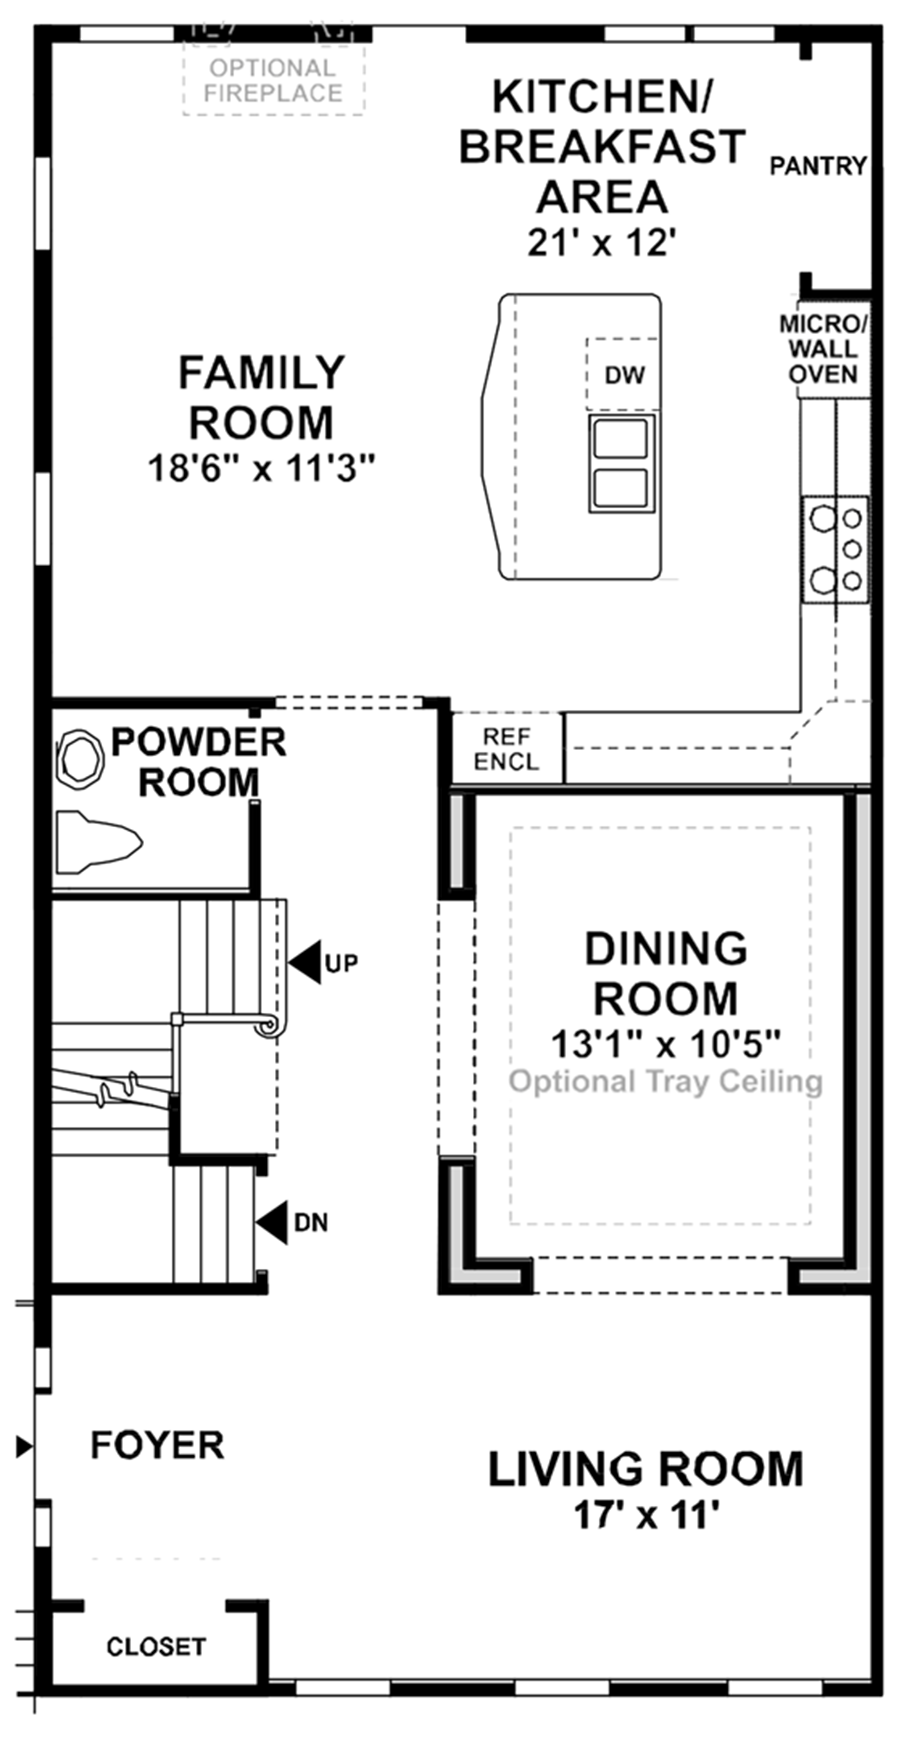 Optional Main Level 4' Extension Floor Plan